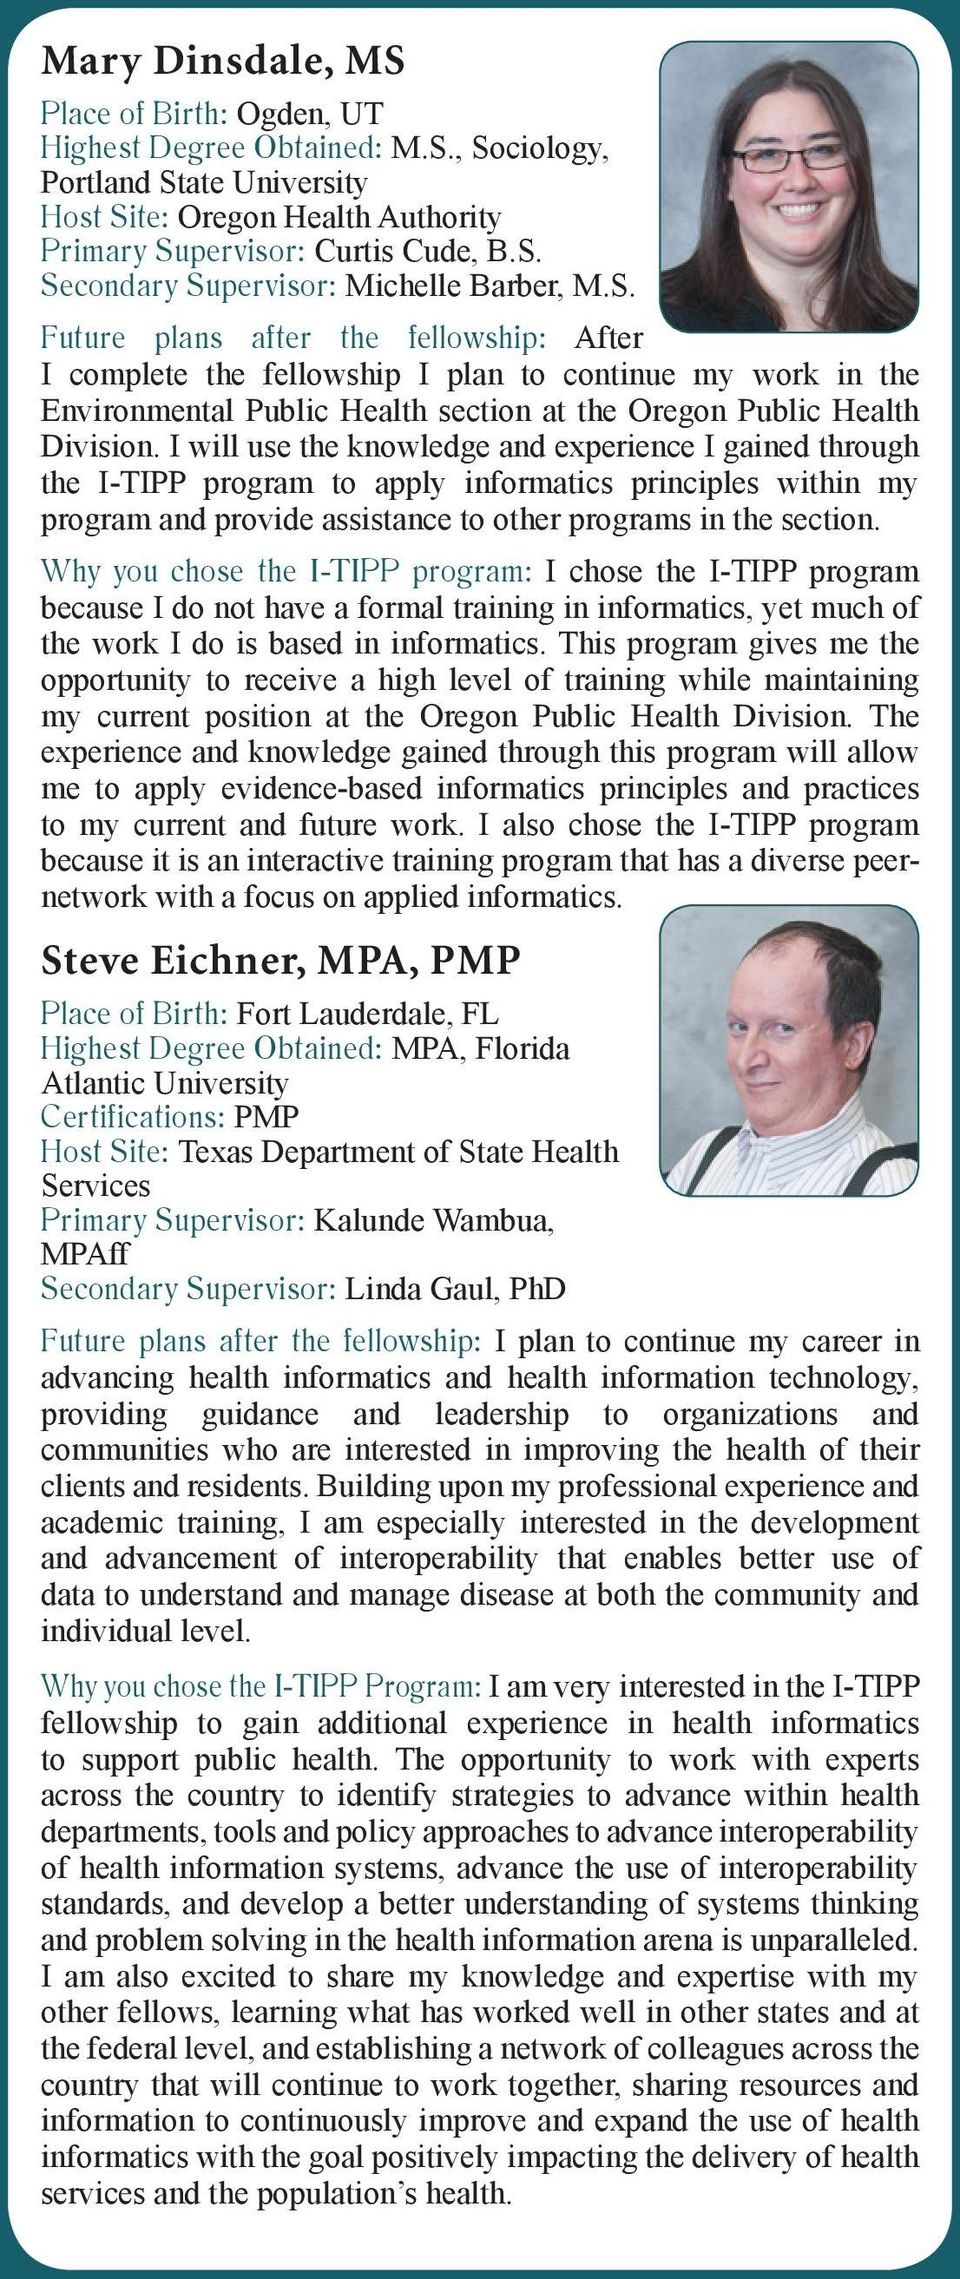 I will use the knowledge and experience I gained through the I-TIPP program to apply informatics principles within my program and provide assistance to other programs in the section.